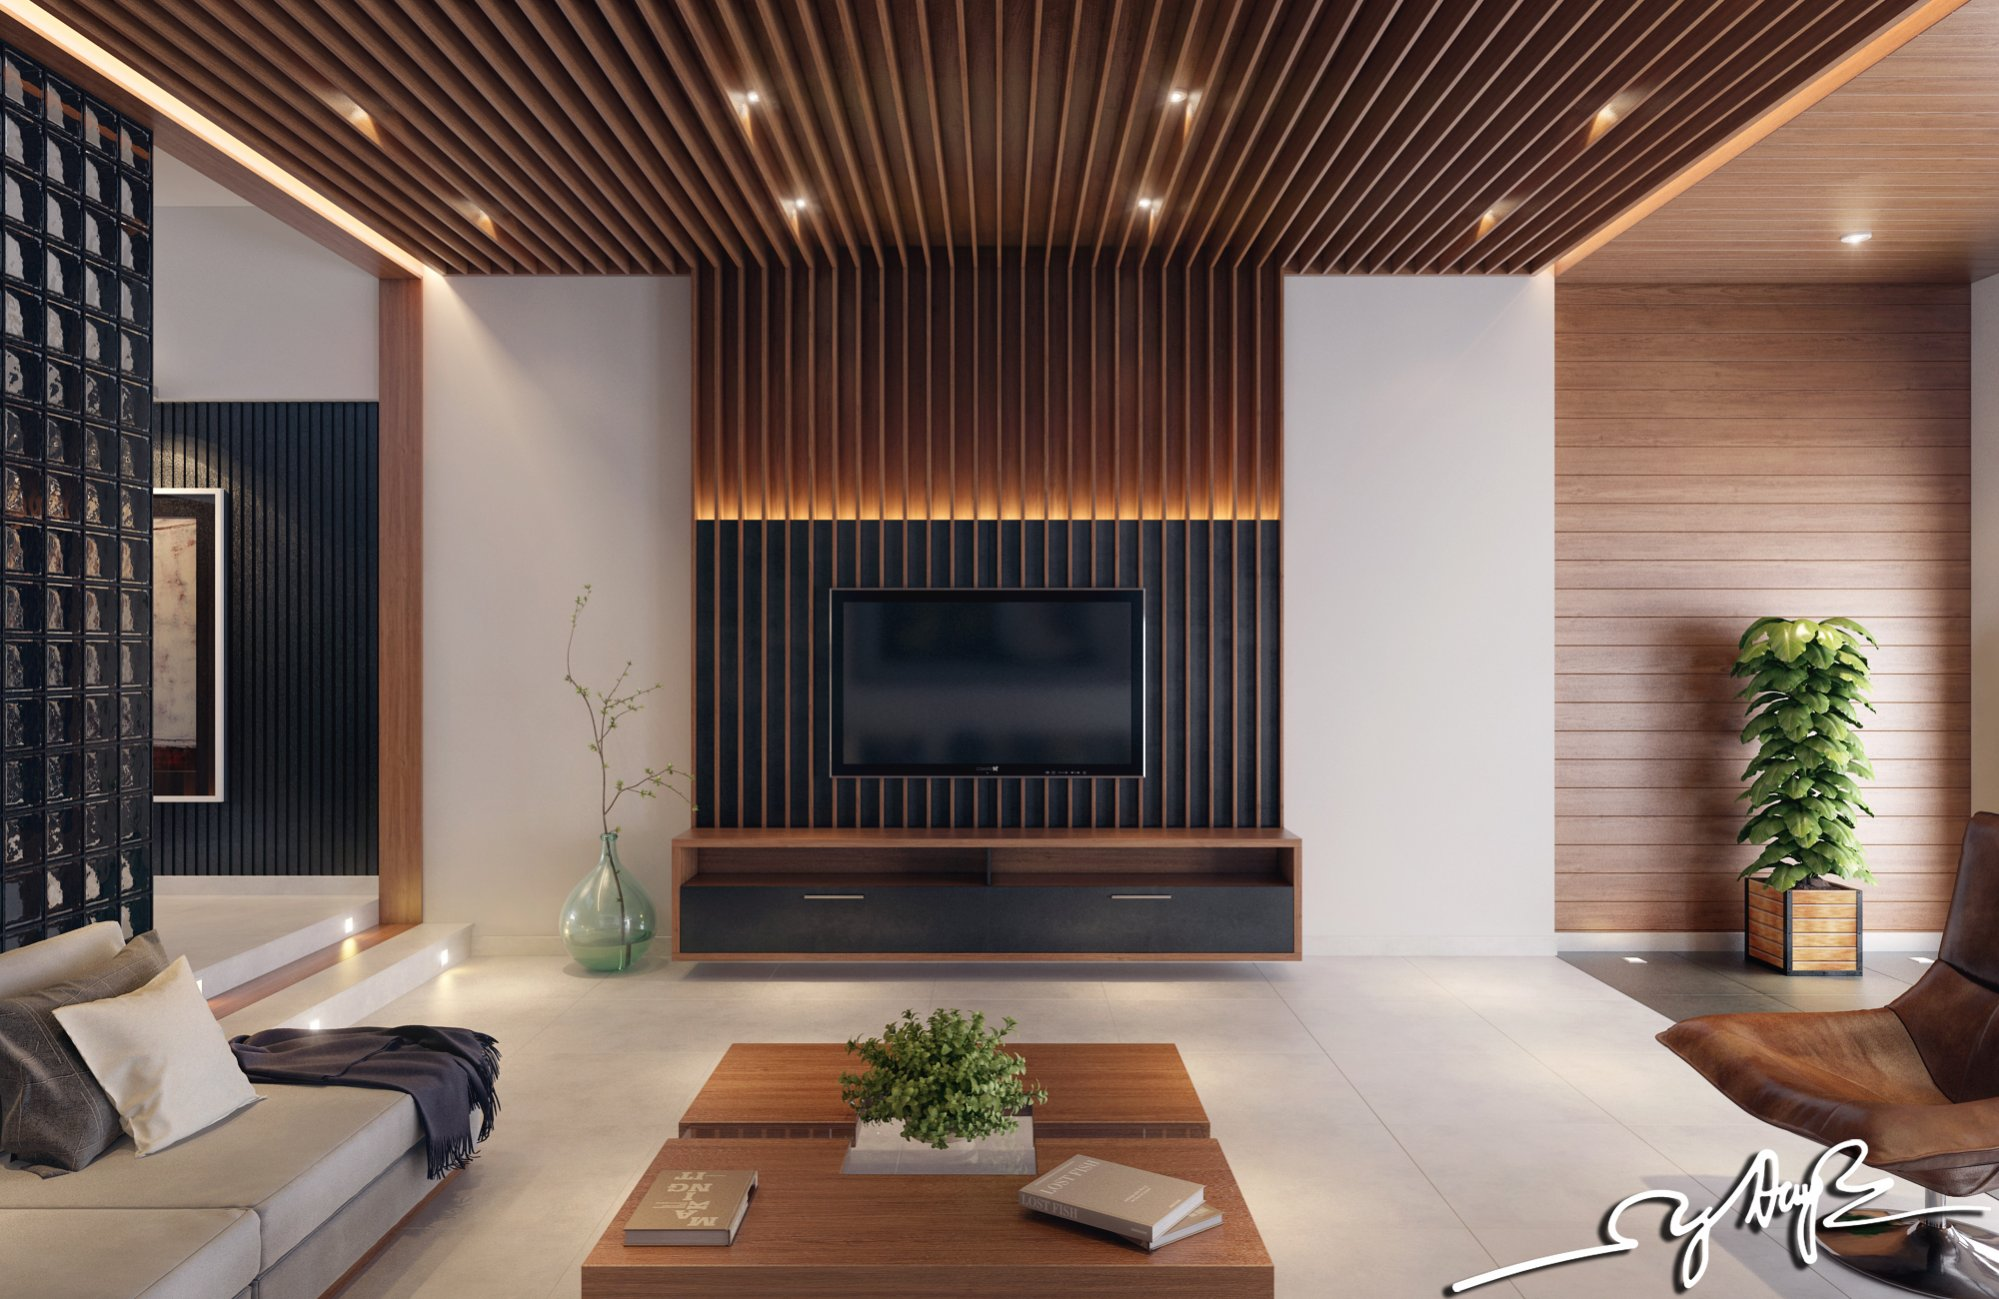 Wall Design In Wood : Interior design close to nature rich wood themes and